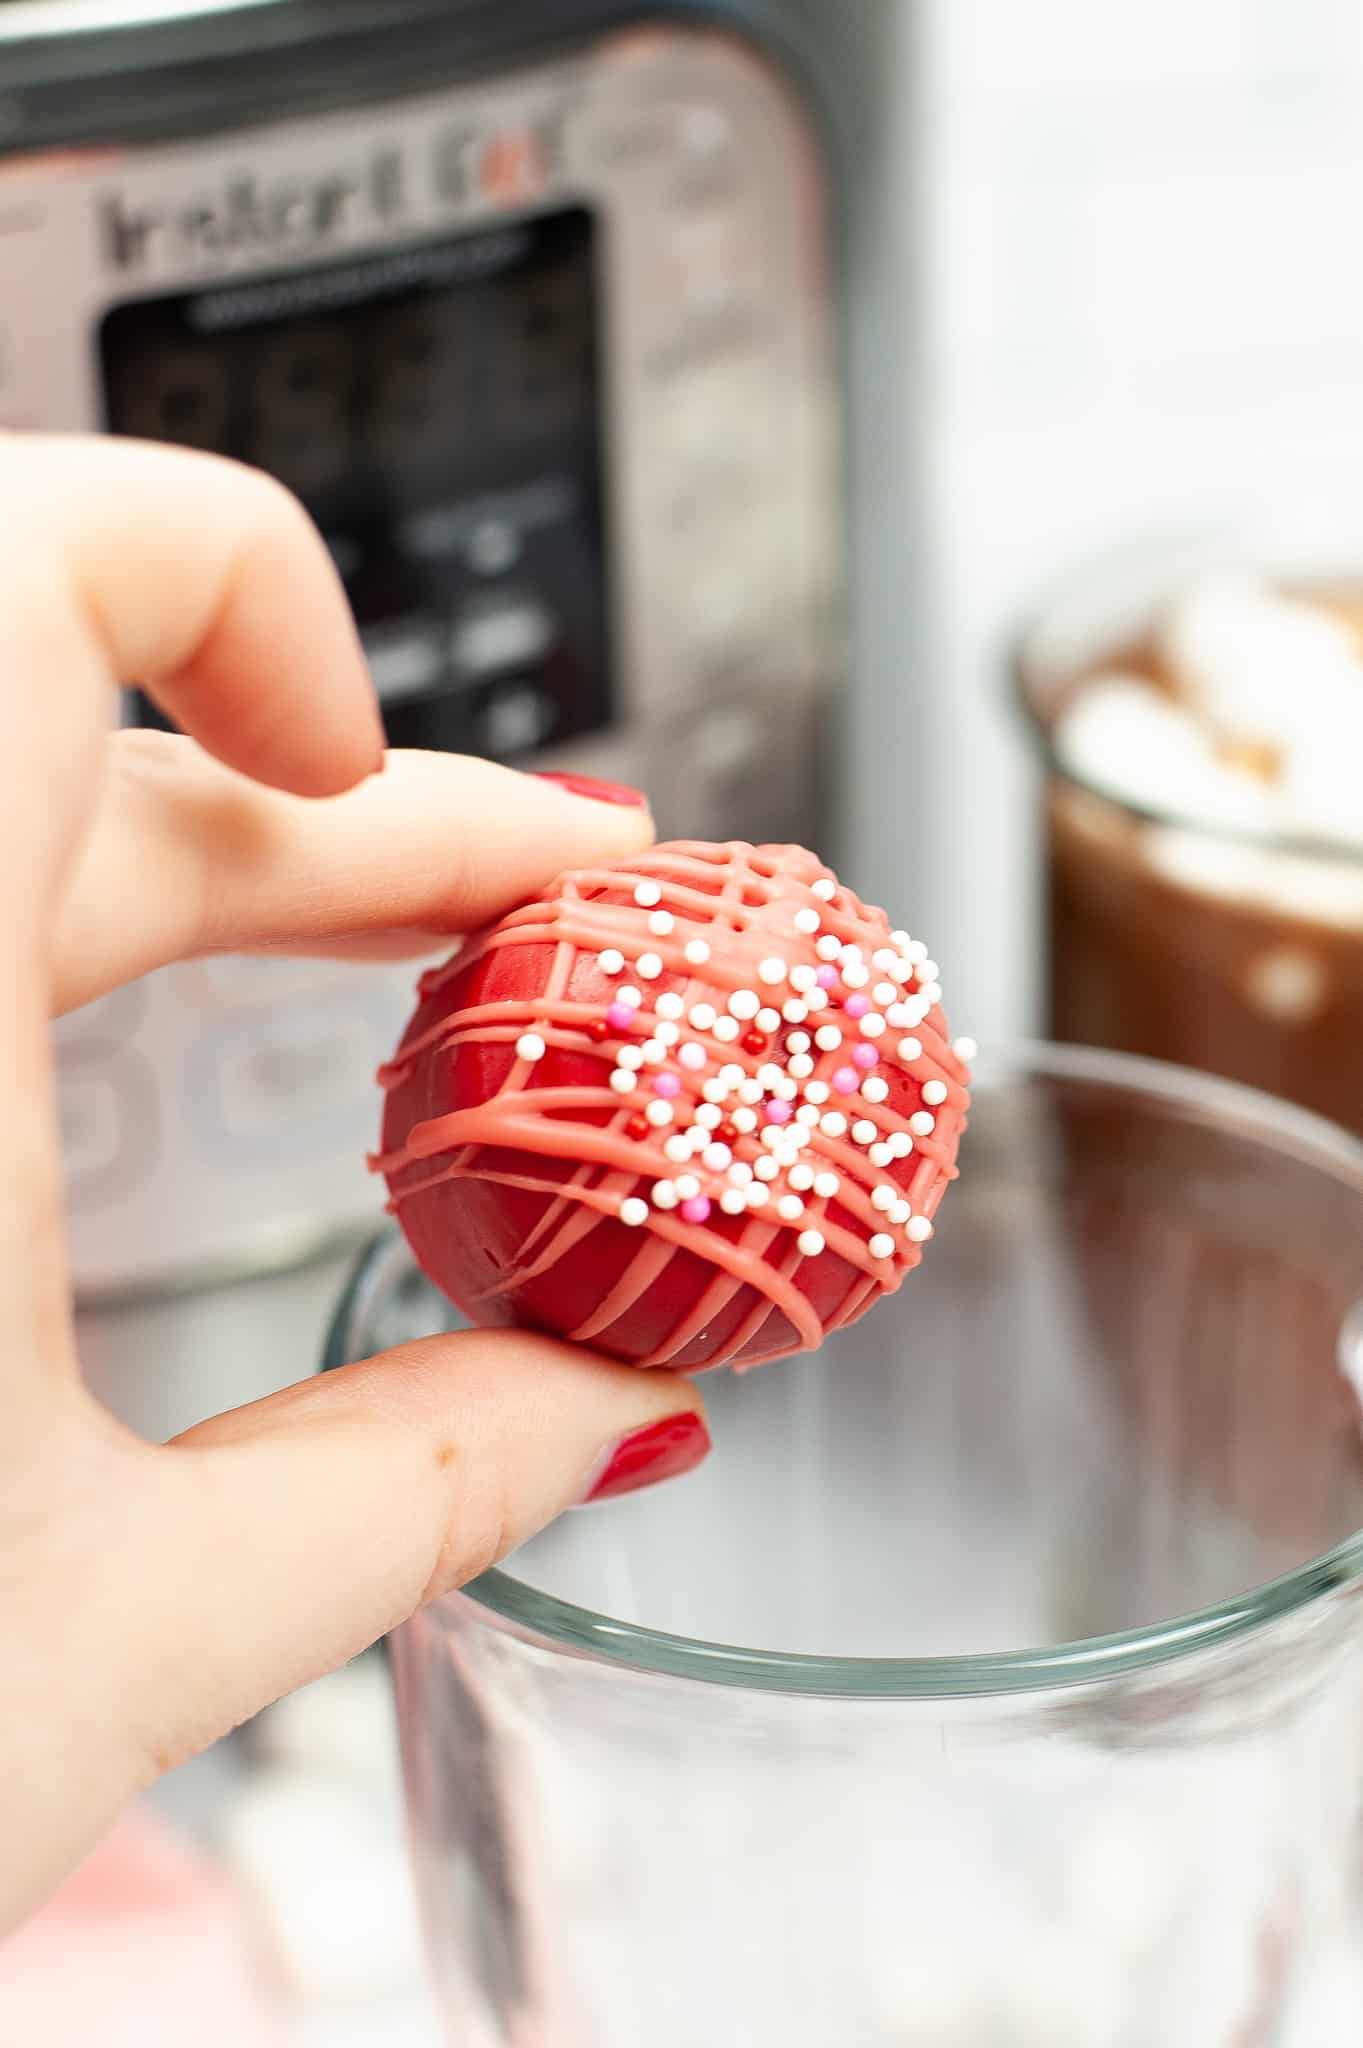 Close up of Hot Chocolate ball being dropped into milk